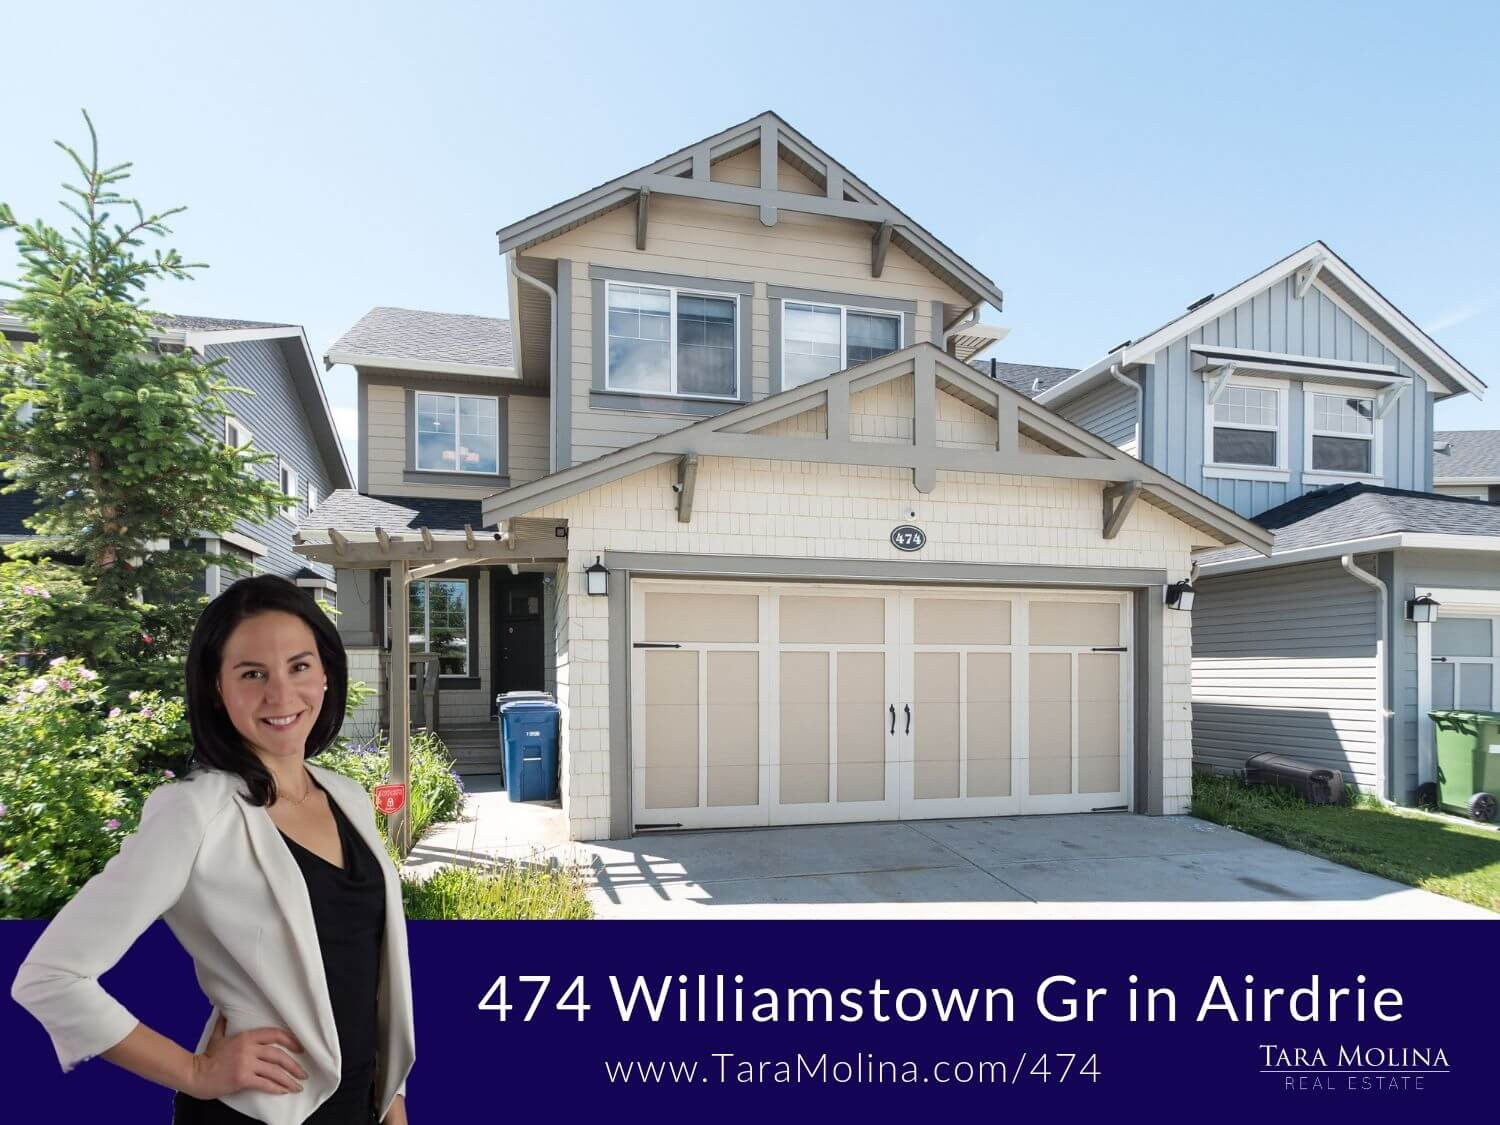 474 Williamstown Gr in Airdrie in Airdrie